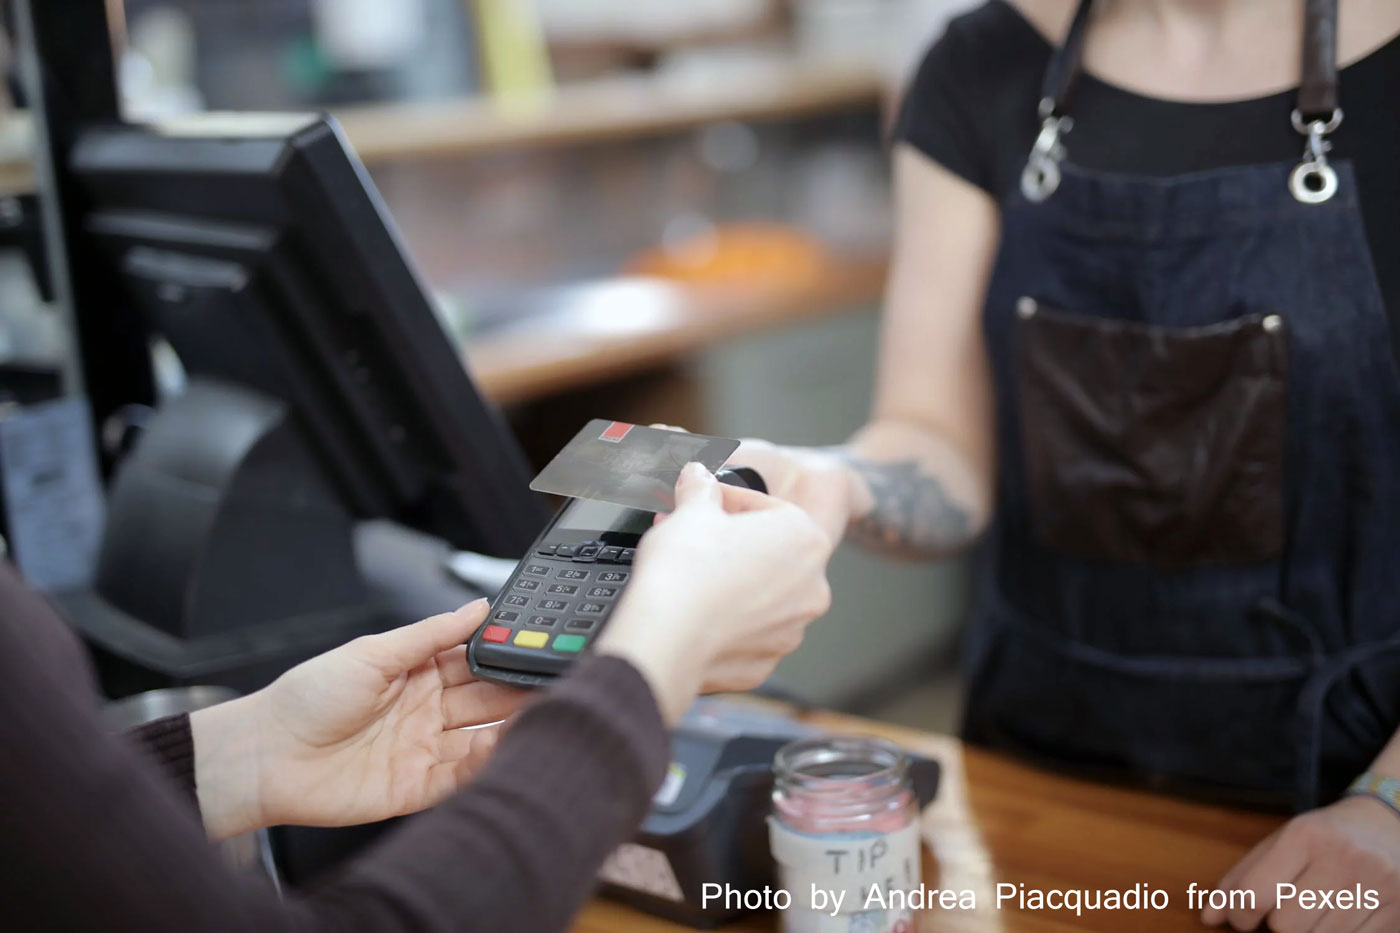 Endlich optimale Payment Lösungen finden: Mobile Payment!